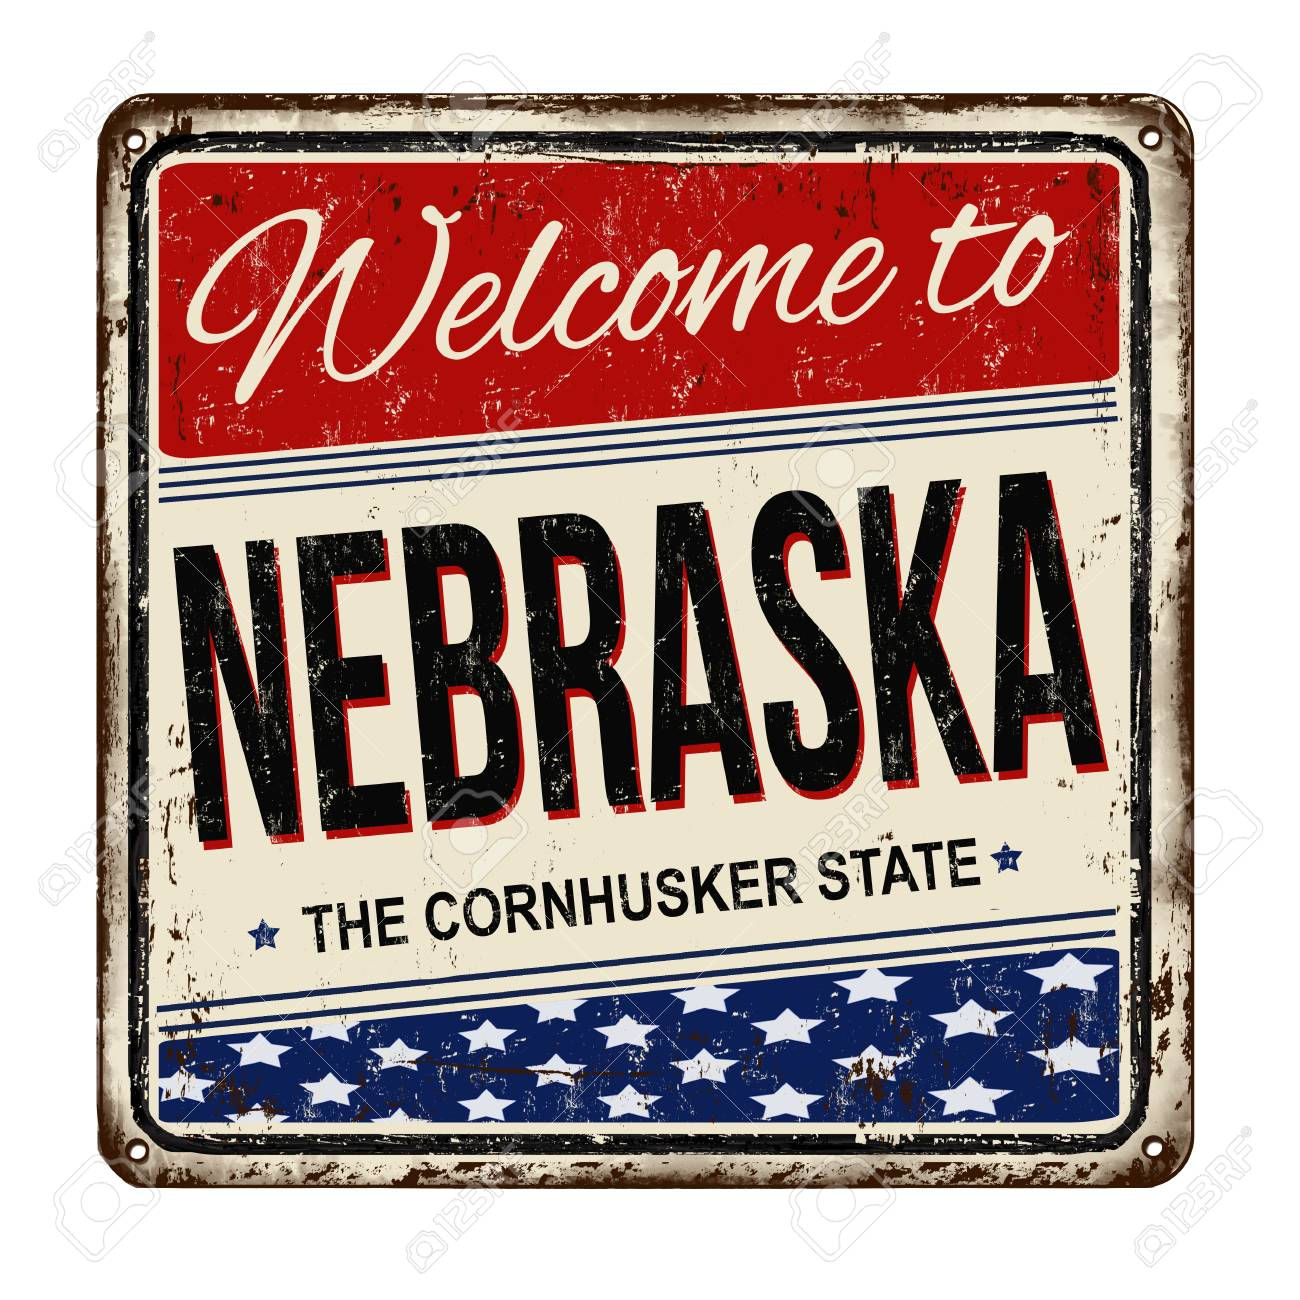 Welcome To Nebraska Vintage Rusty Metal Sign On A White Background 1300x1300